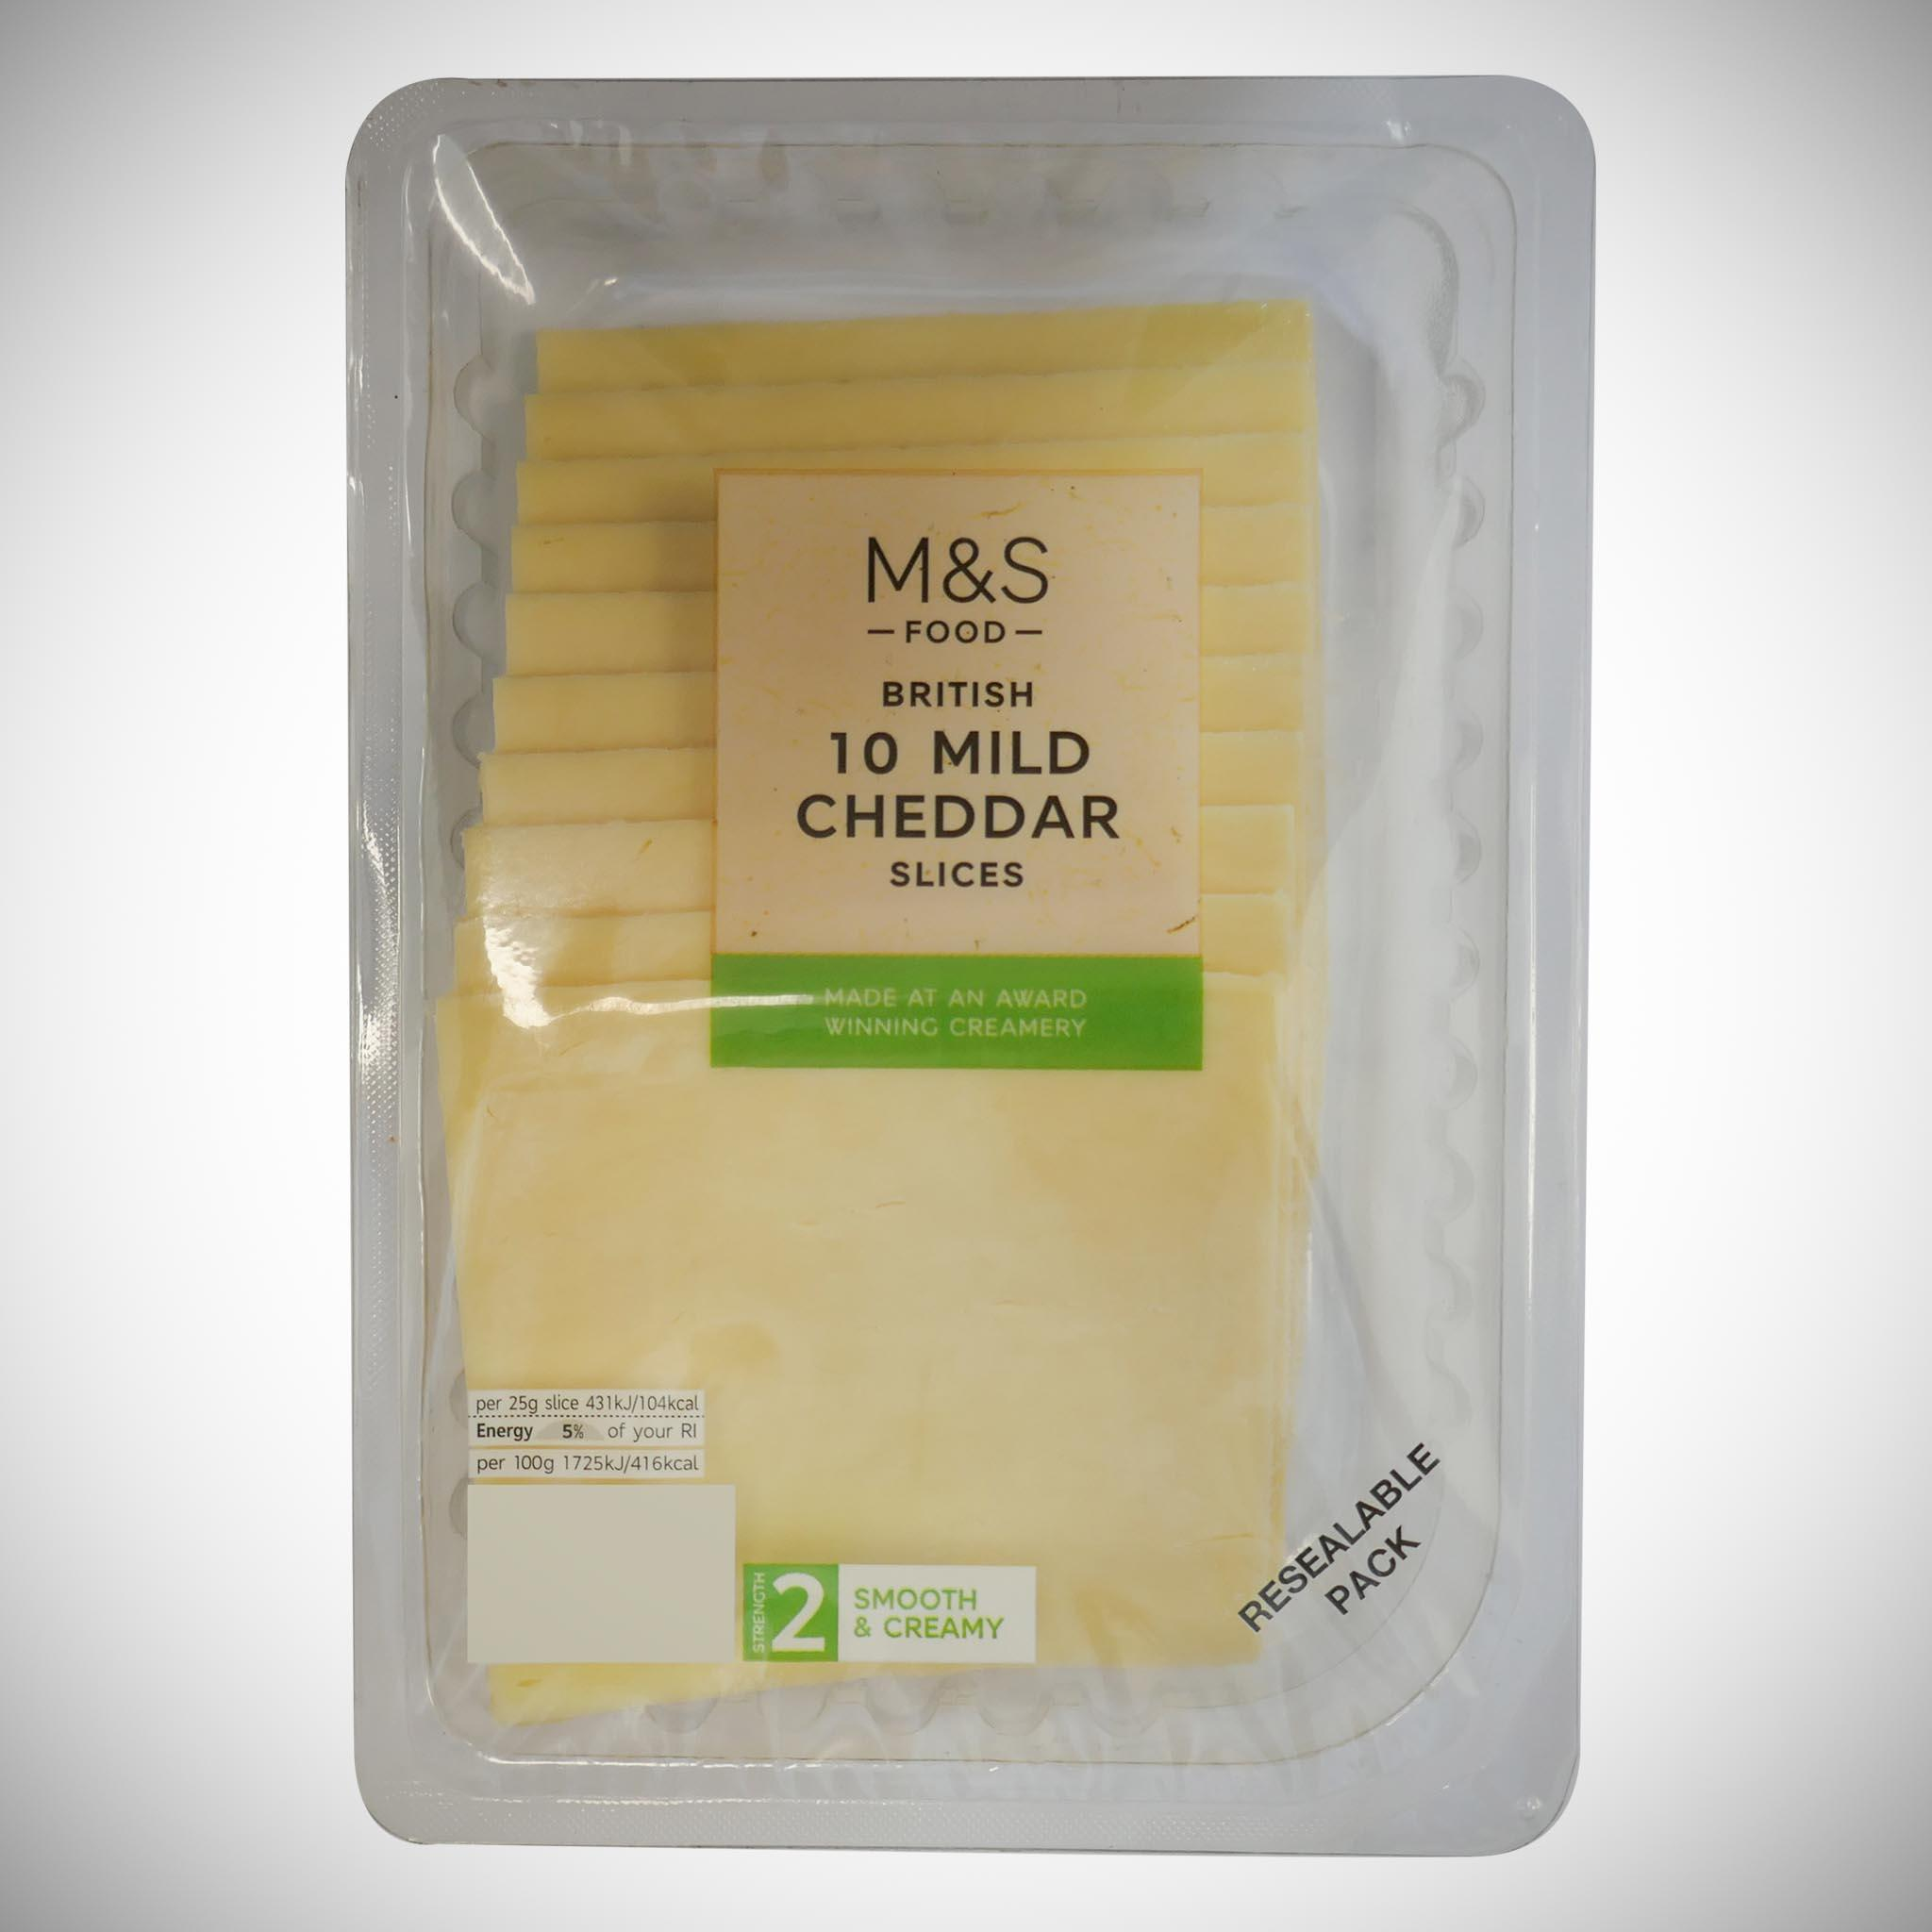 British 10 Mild Cheddar Slices 250g